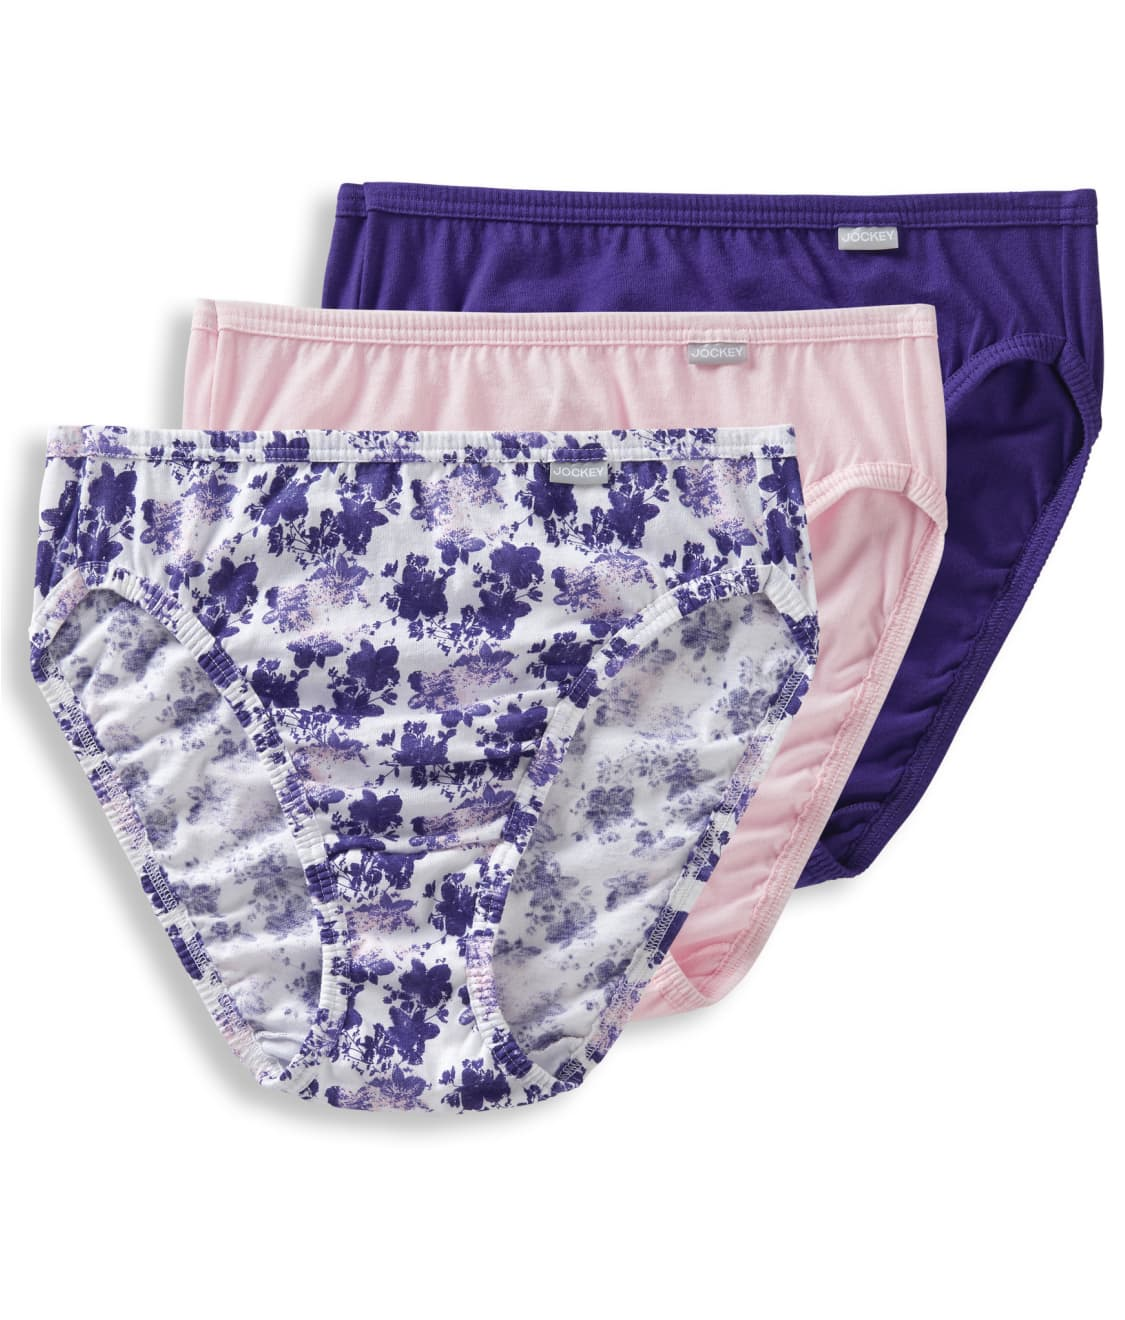 810a1ed2801 See Elance French Cut Brief 3-Pack in Plum   Lilac   Pink